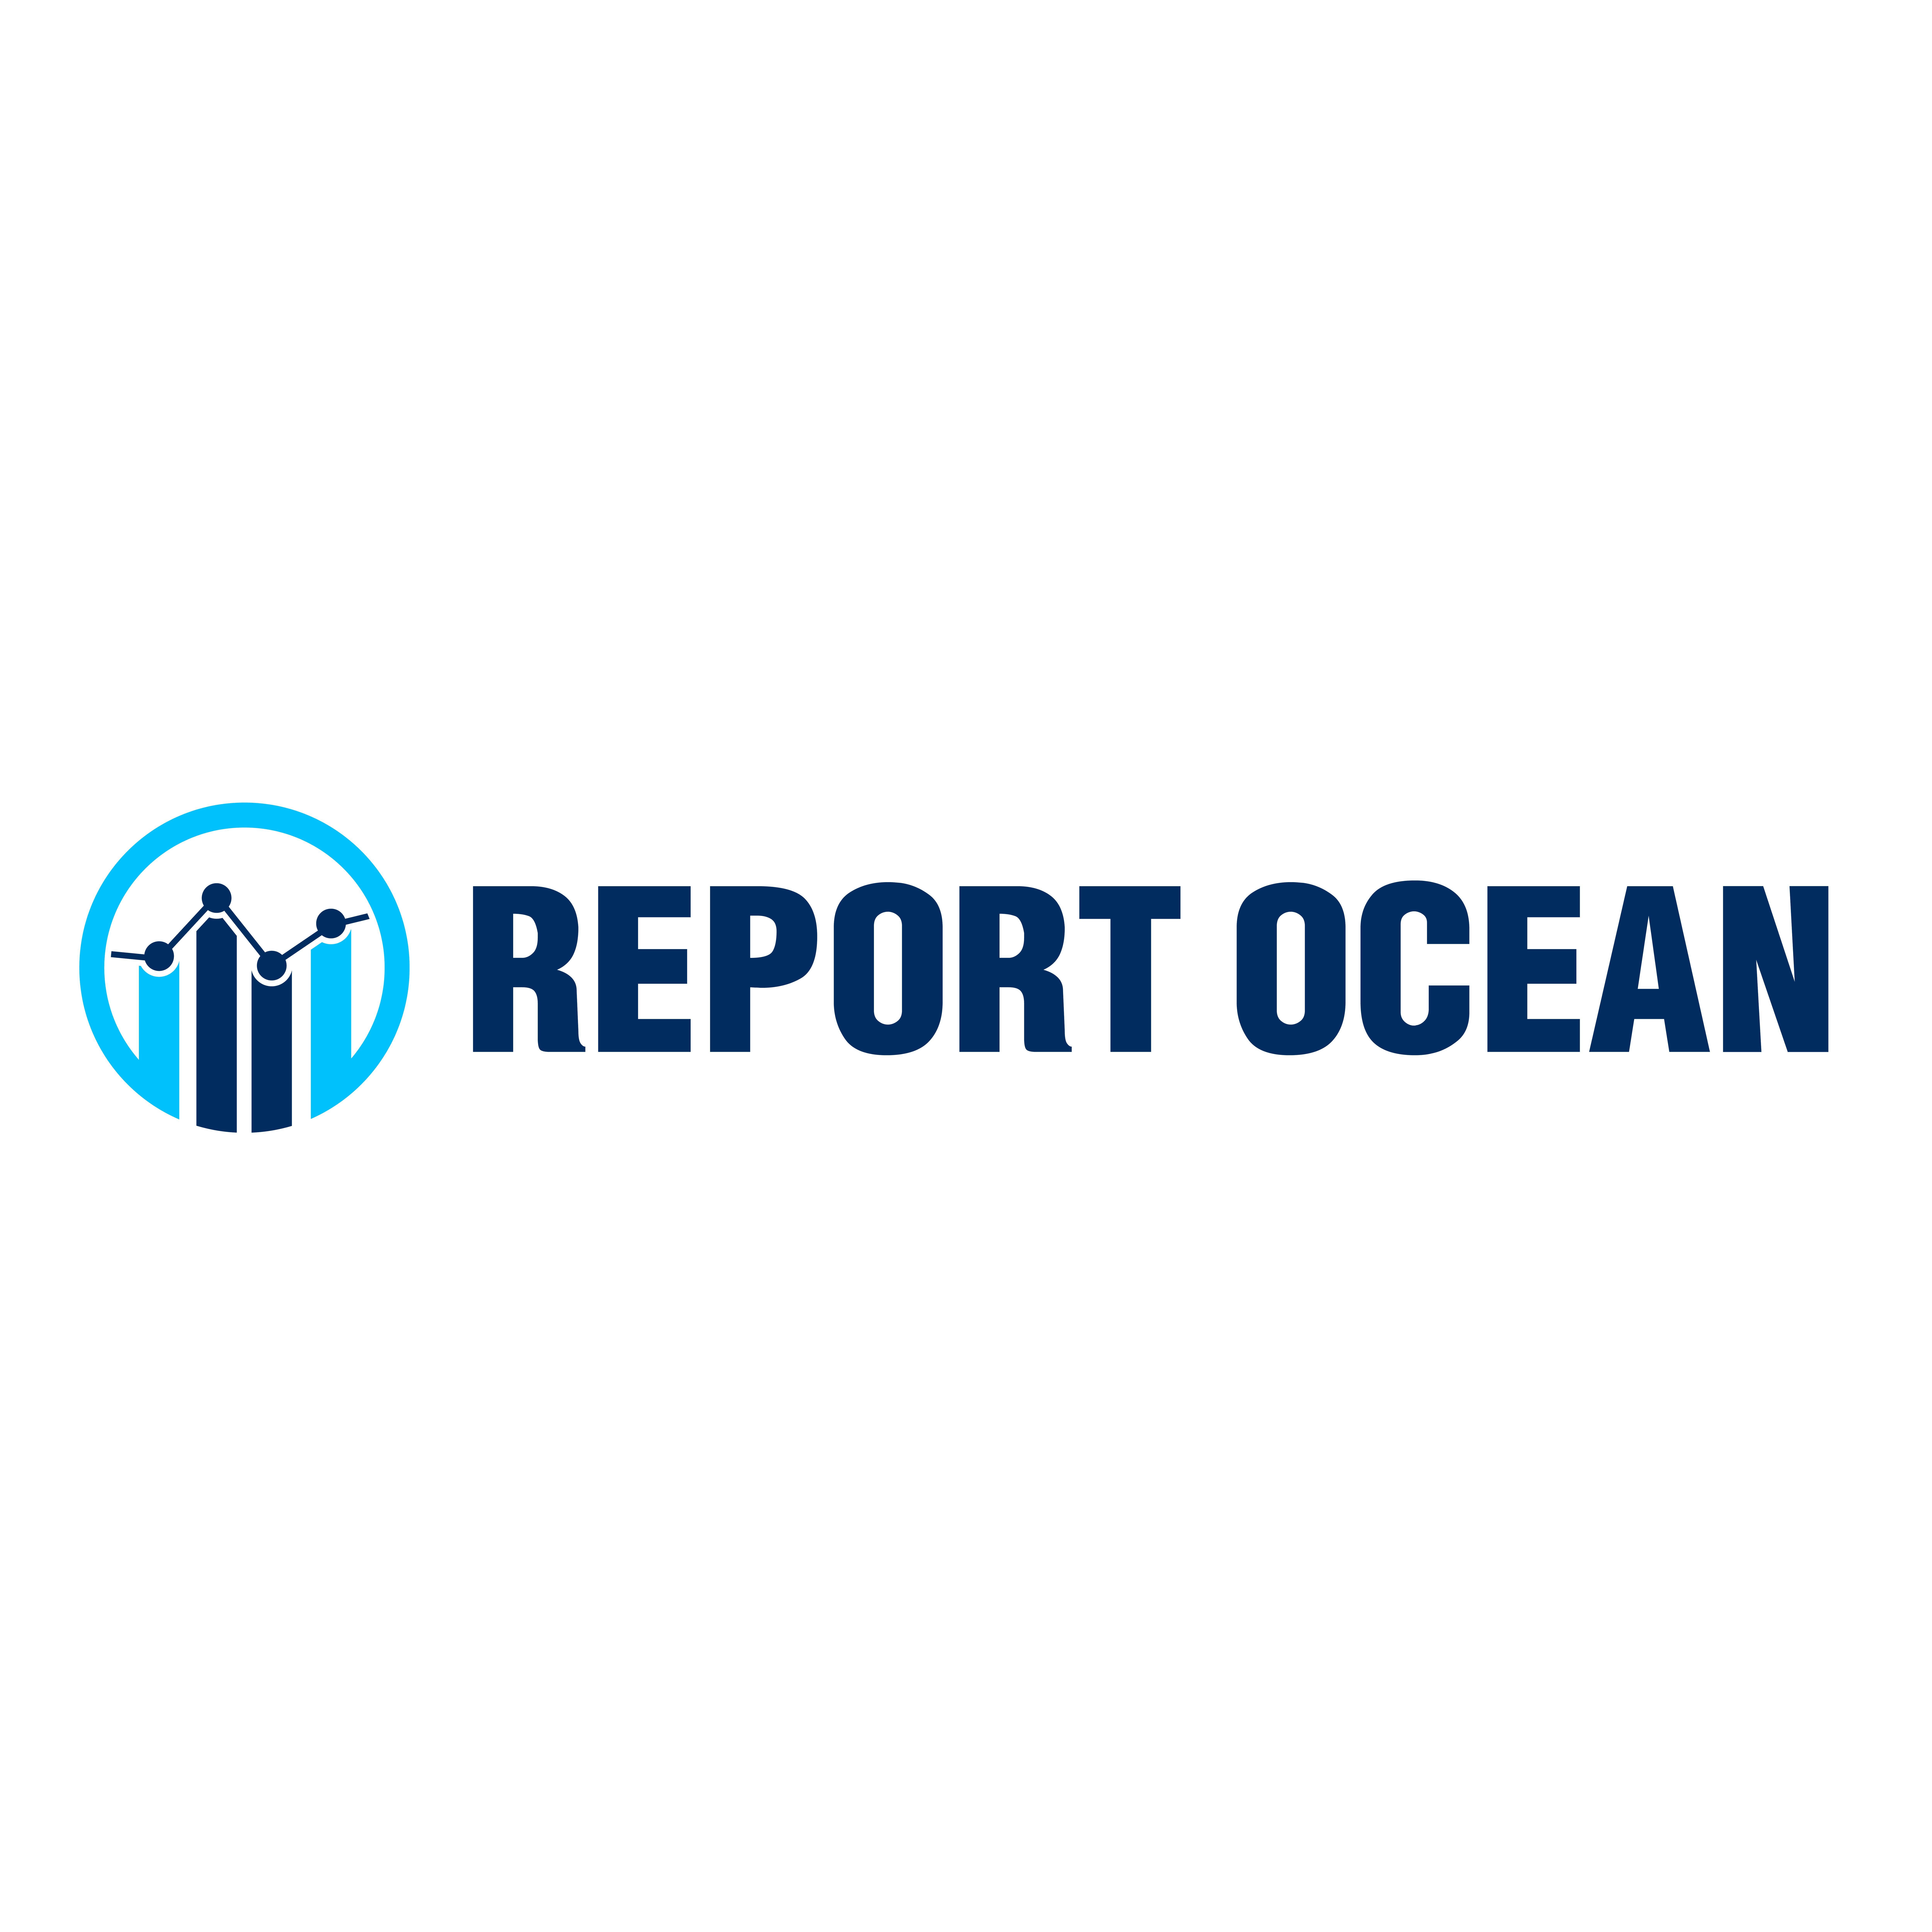 Boosted by Increase in IoT Application, Global Emotion Detection and Recognition (EDR) Market to Touch 18% CAGR between 2020 and 2027